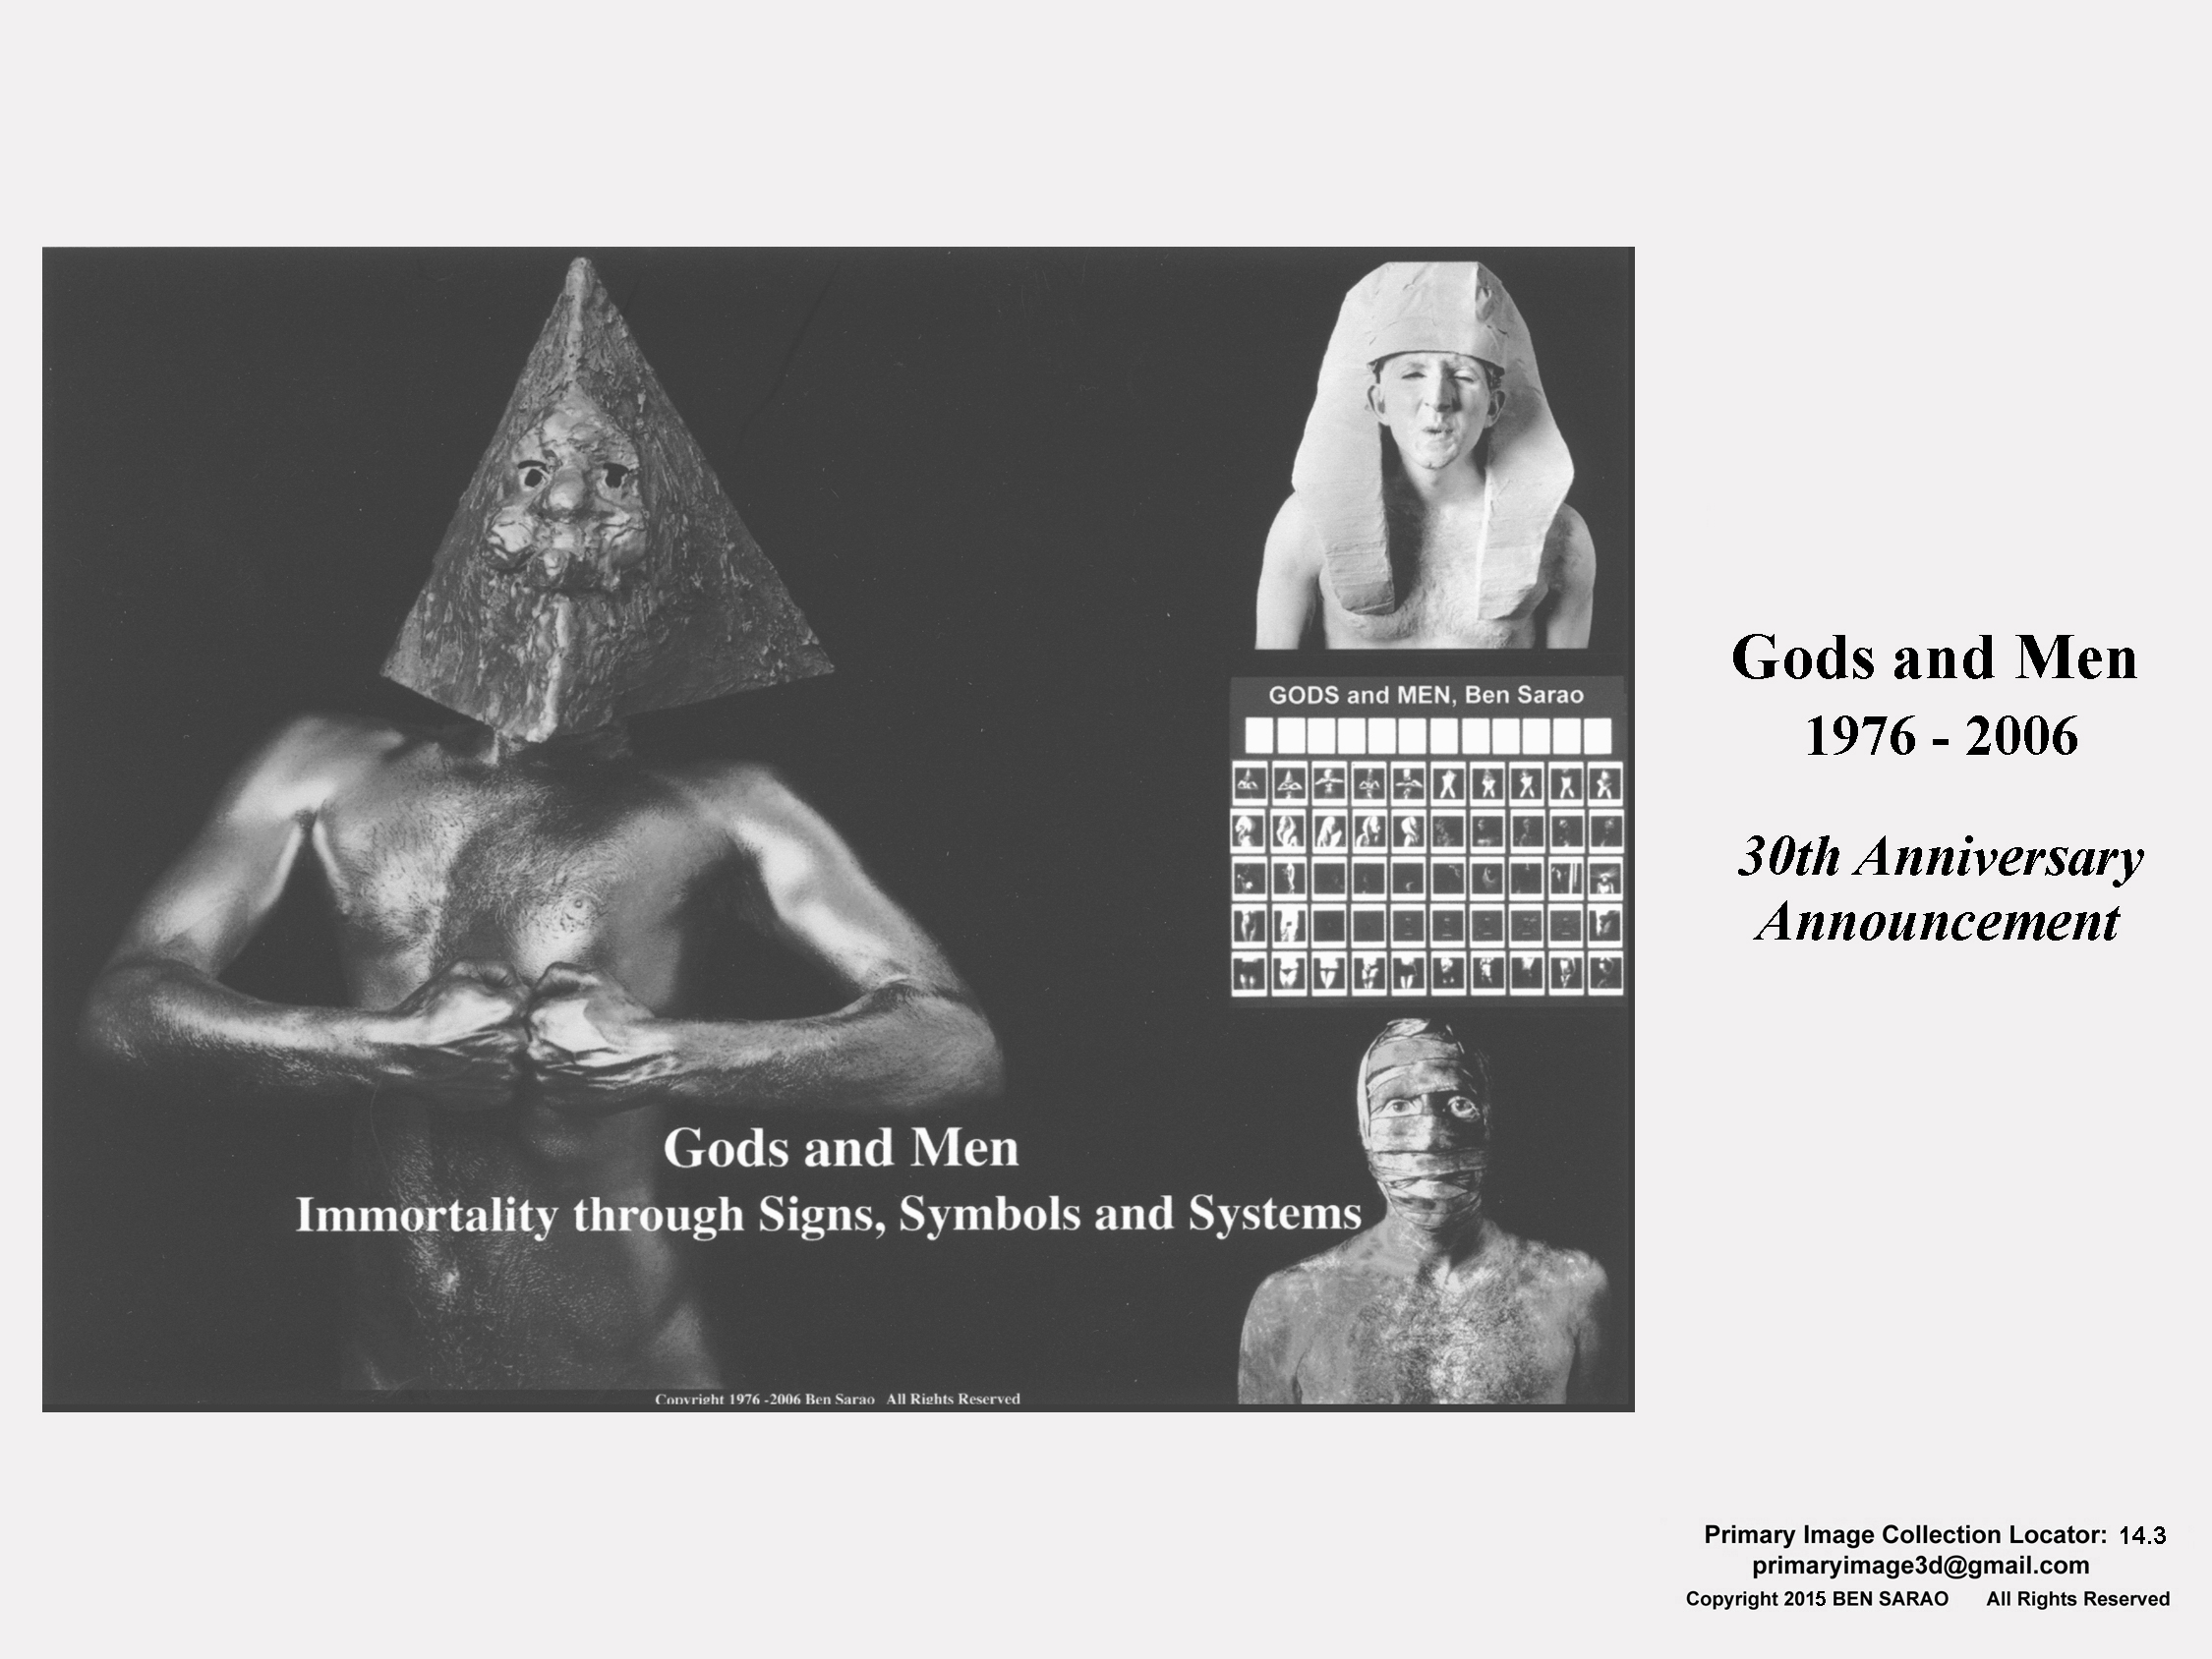 30.VI. Gods and Men IMORTALITY.jpg